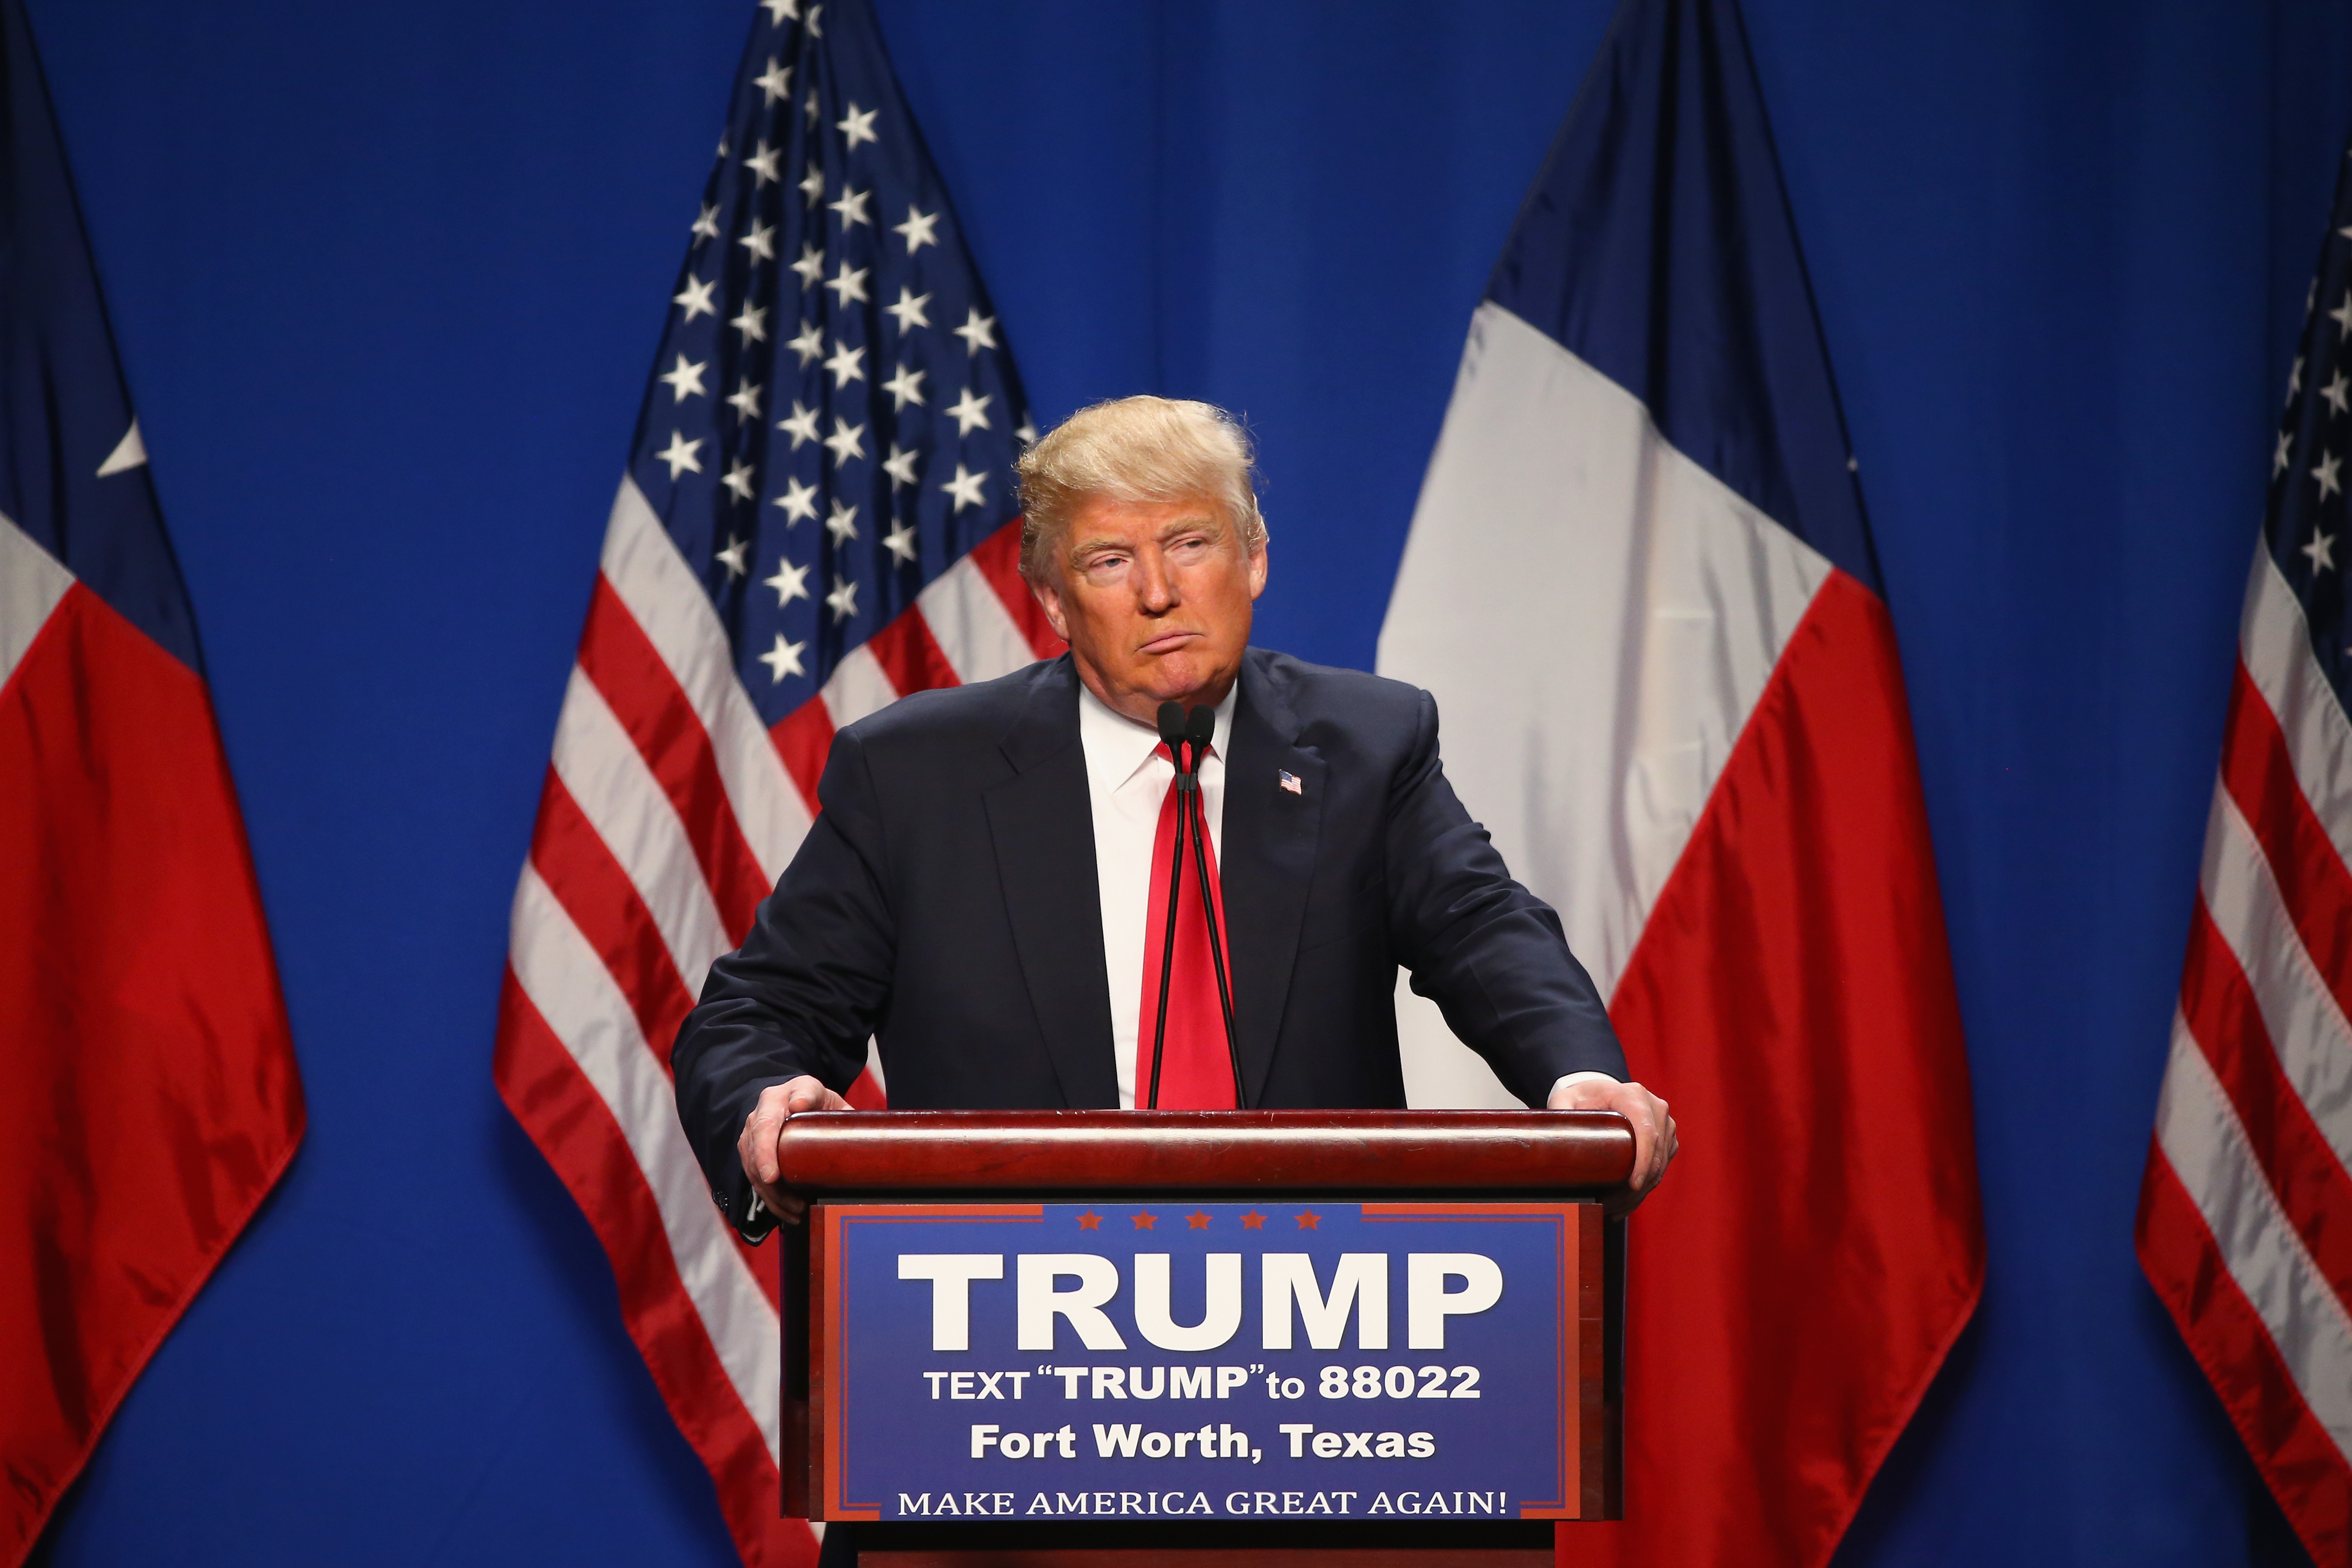 Republican presidential candidate Donald Trump speaks at a rally in Fort Worth, Texas, Feb. 26, 2016.